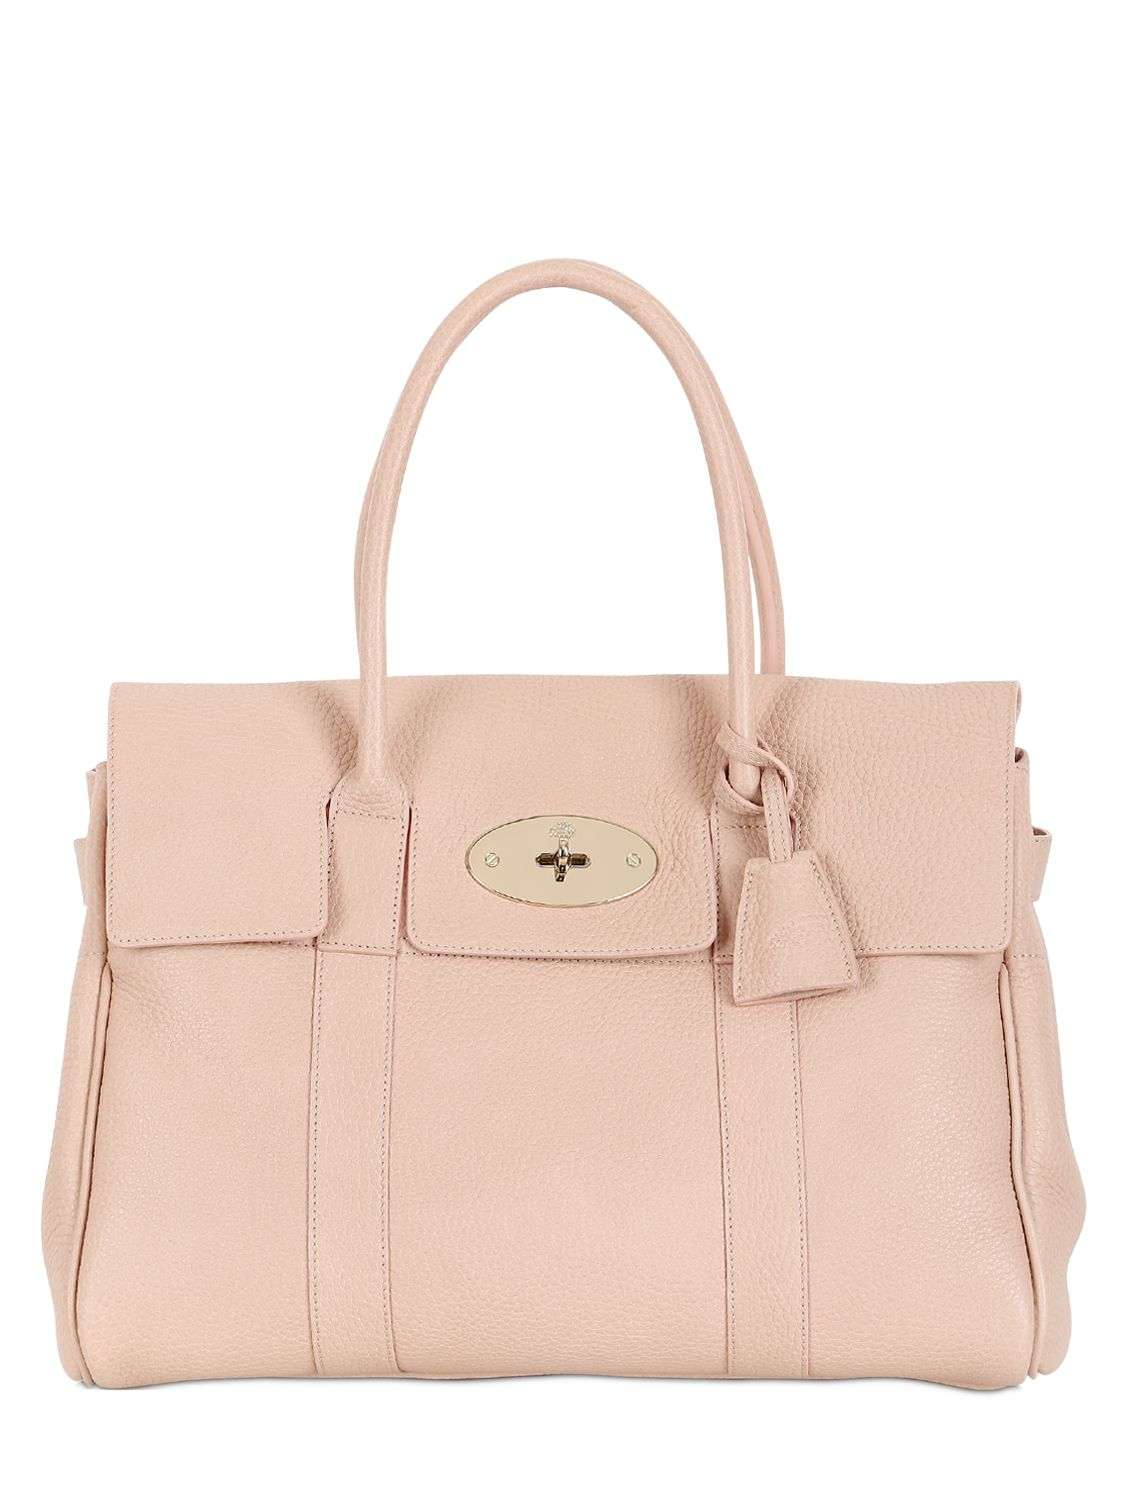 ... netherlands lyst mulberry bayswater soft grained leather bag in pink  d11ab ca225 ... c9ac72a6e1496